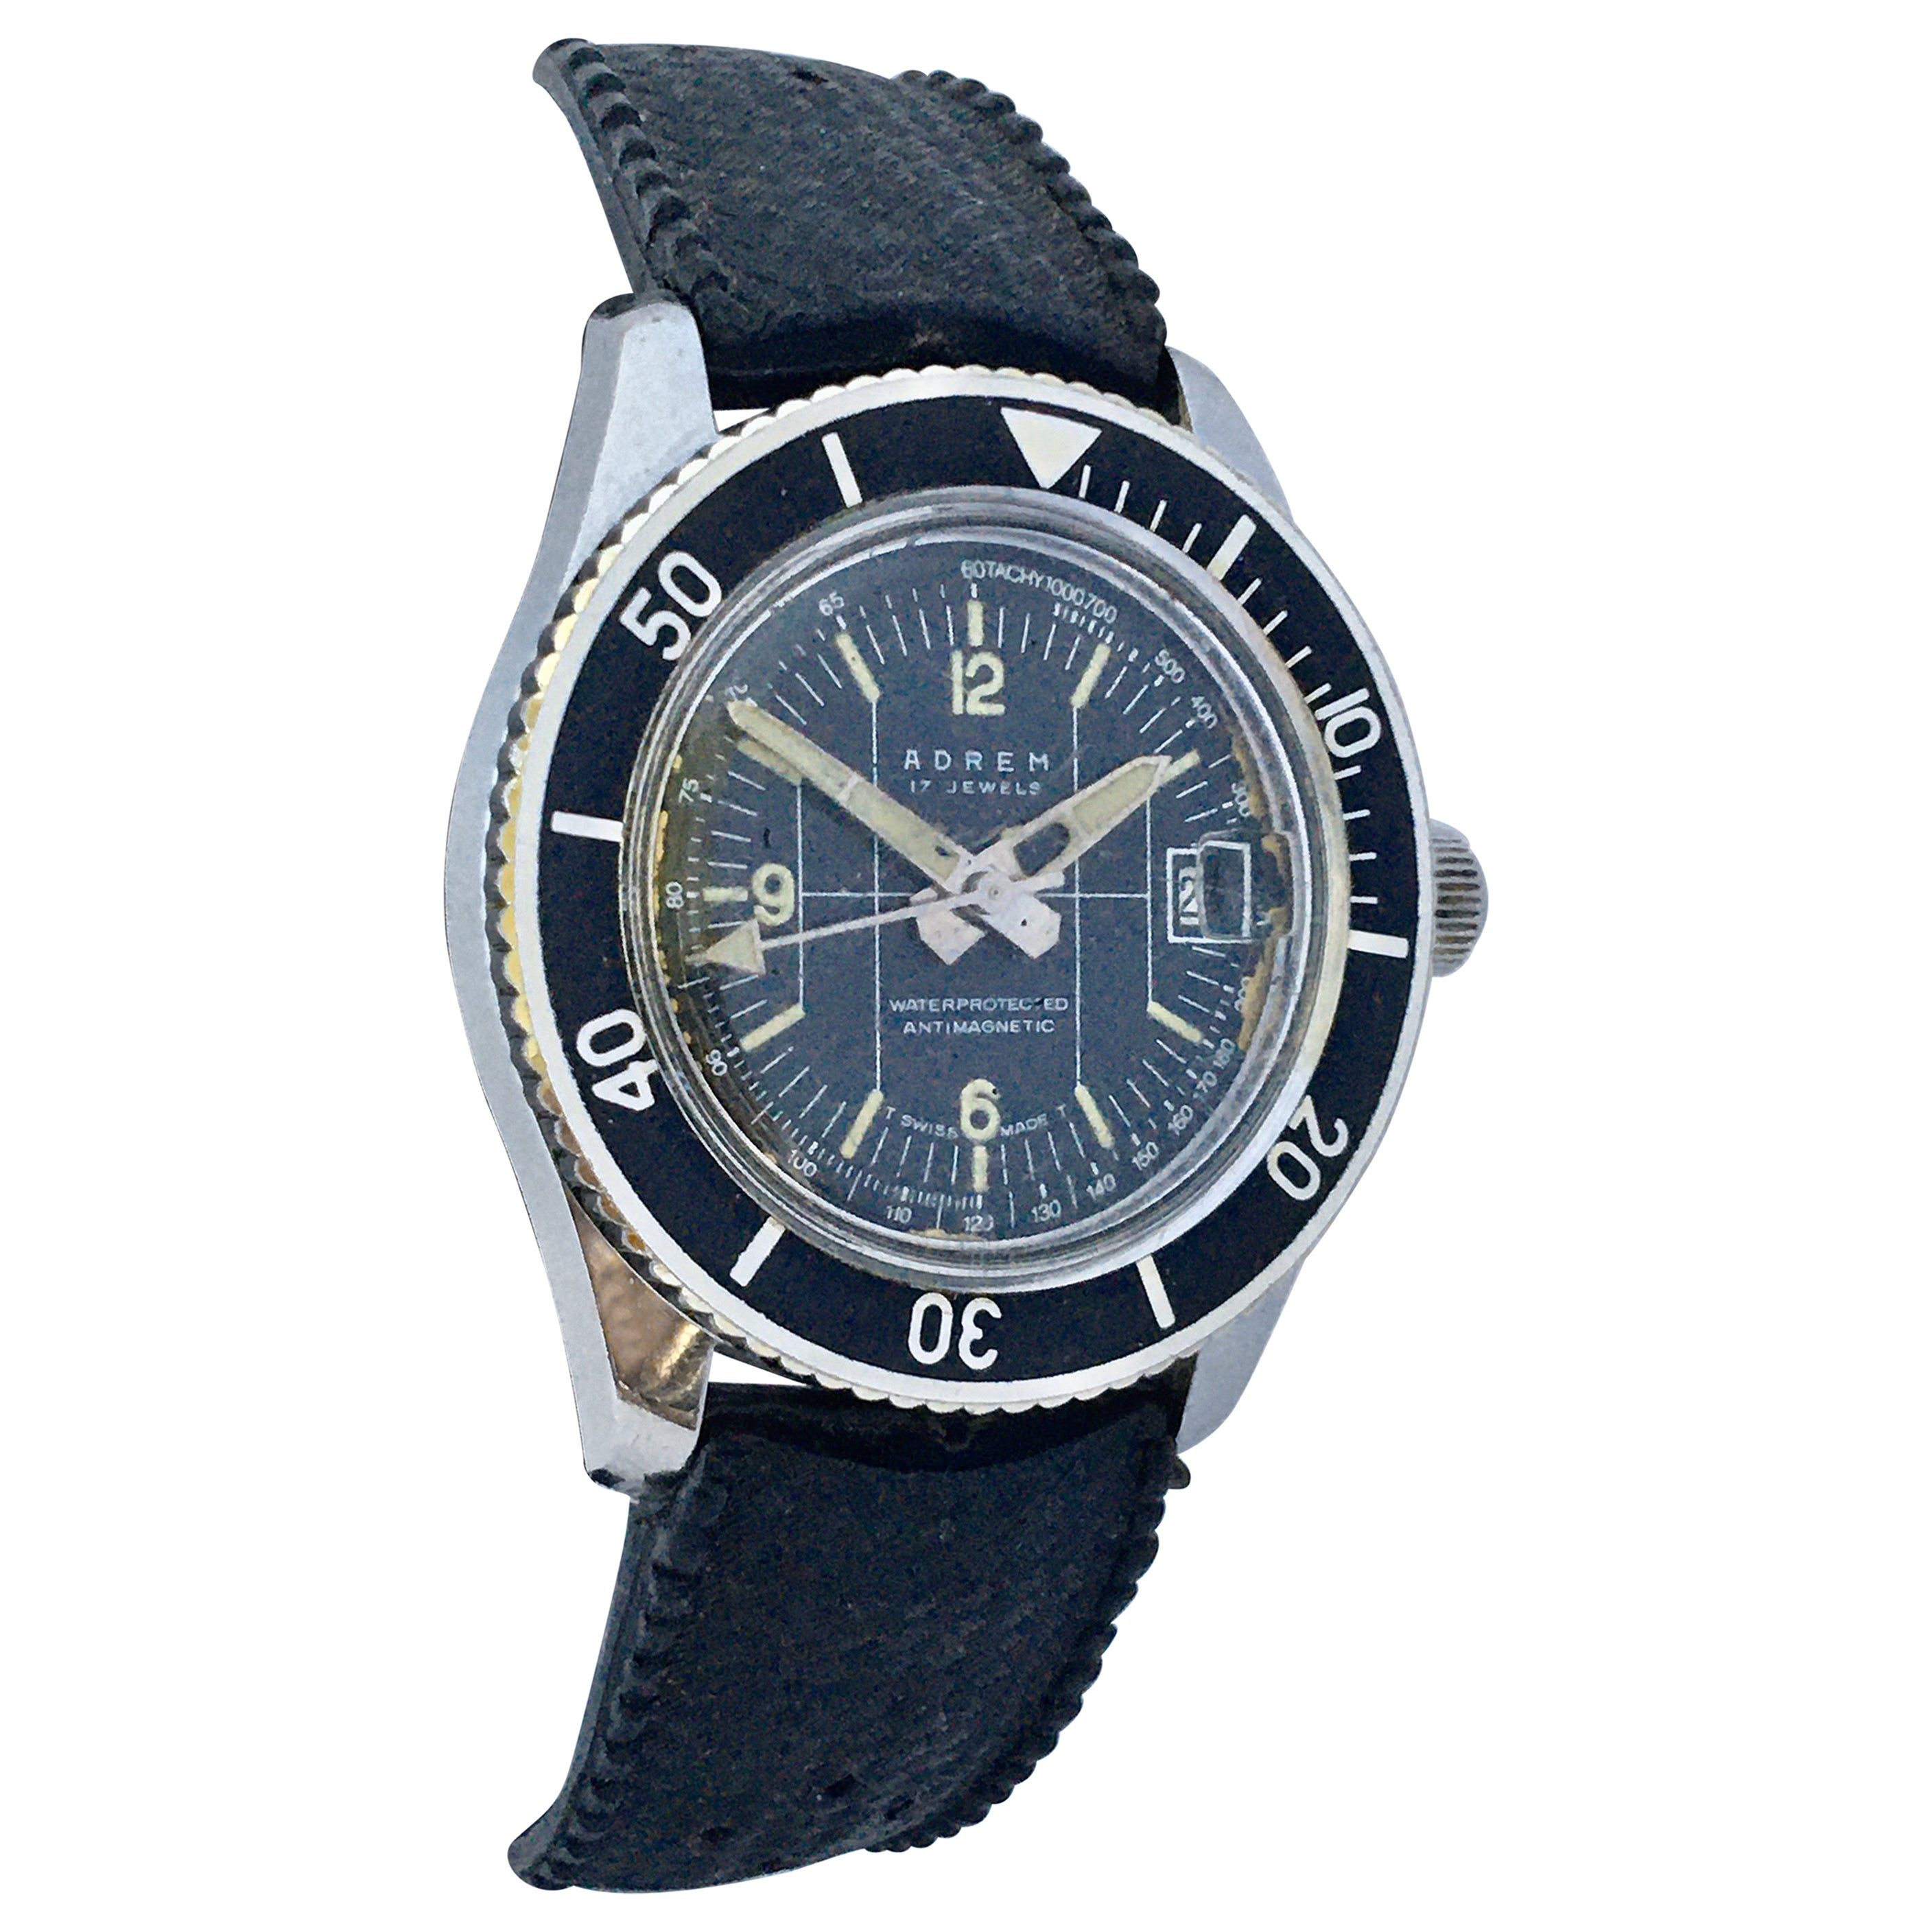 Vintage 1970s Diver's Mechanical Swiss Watch